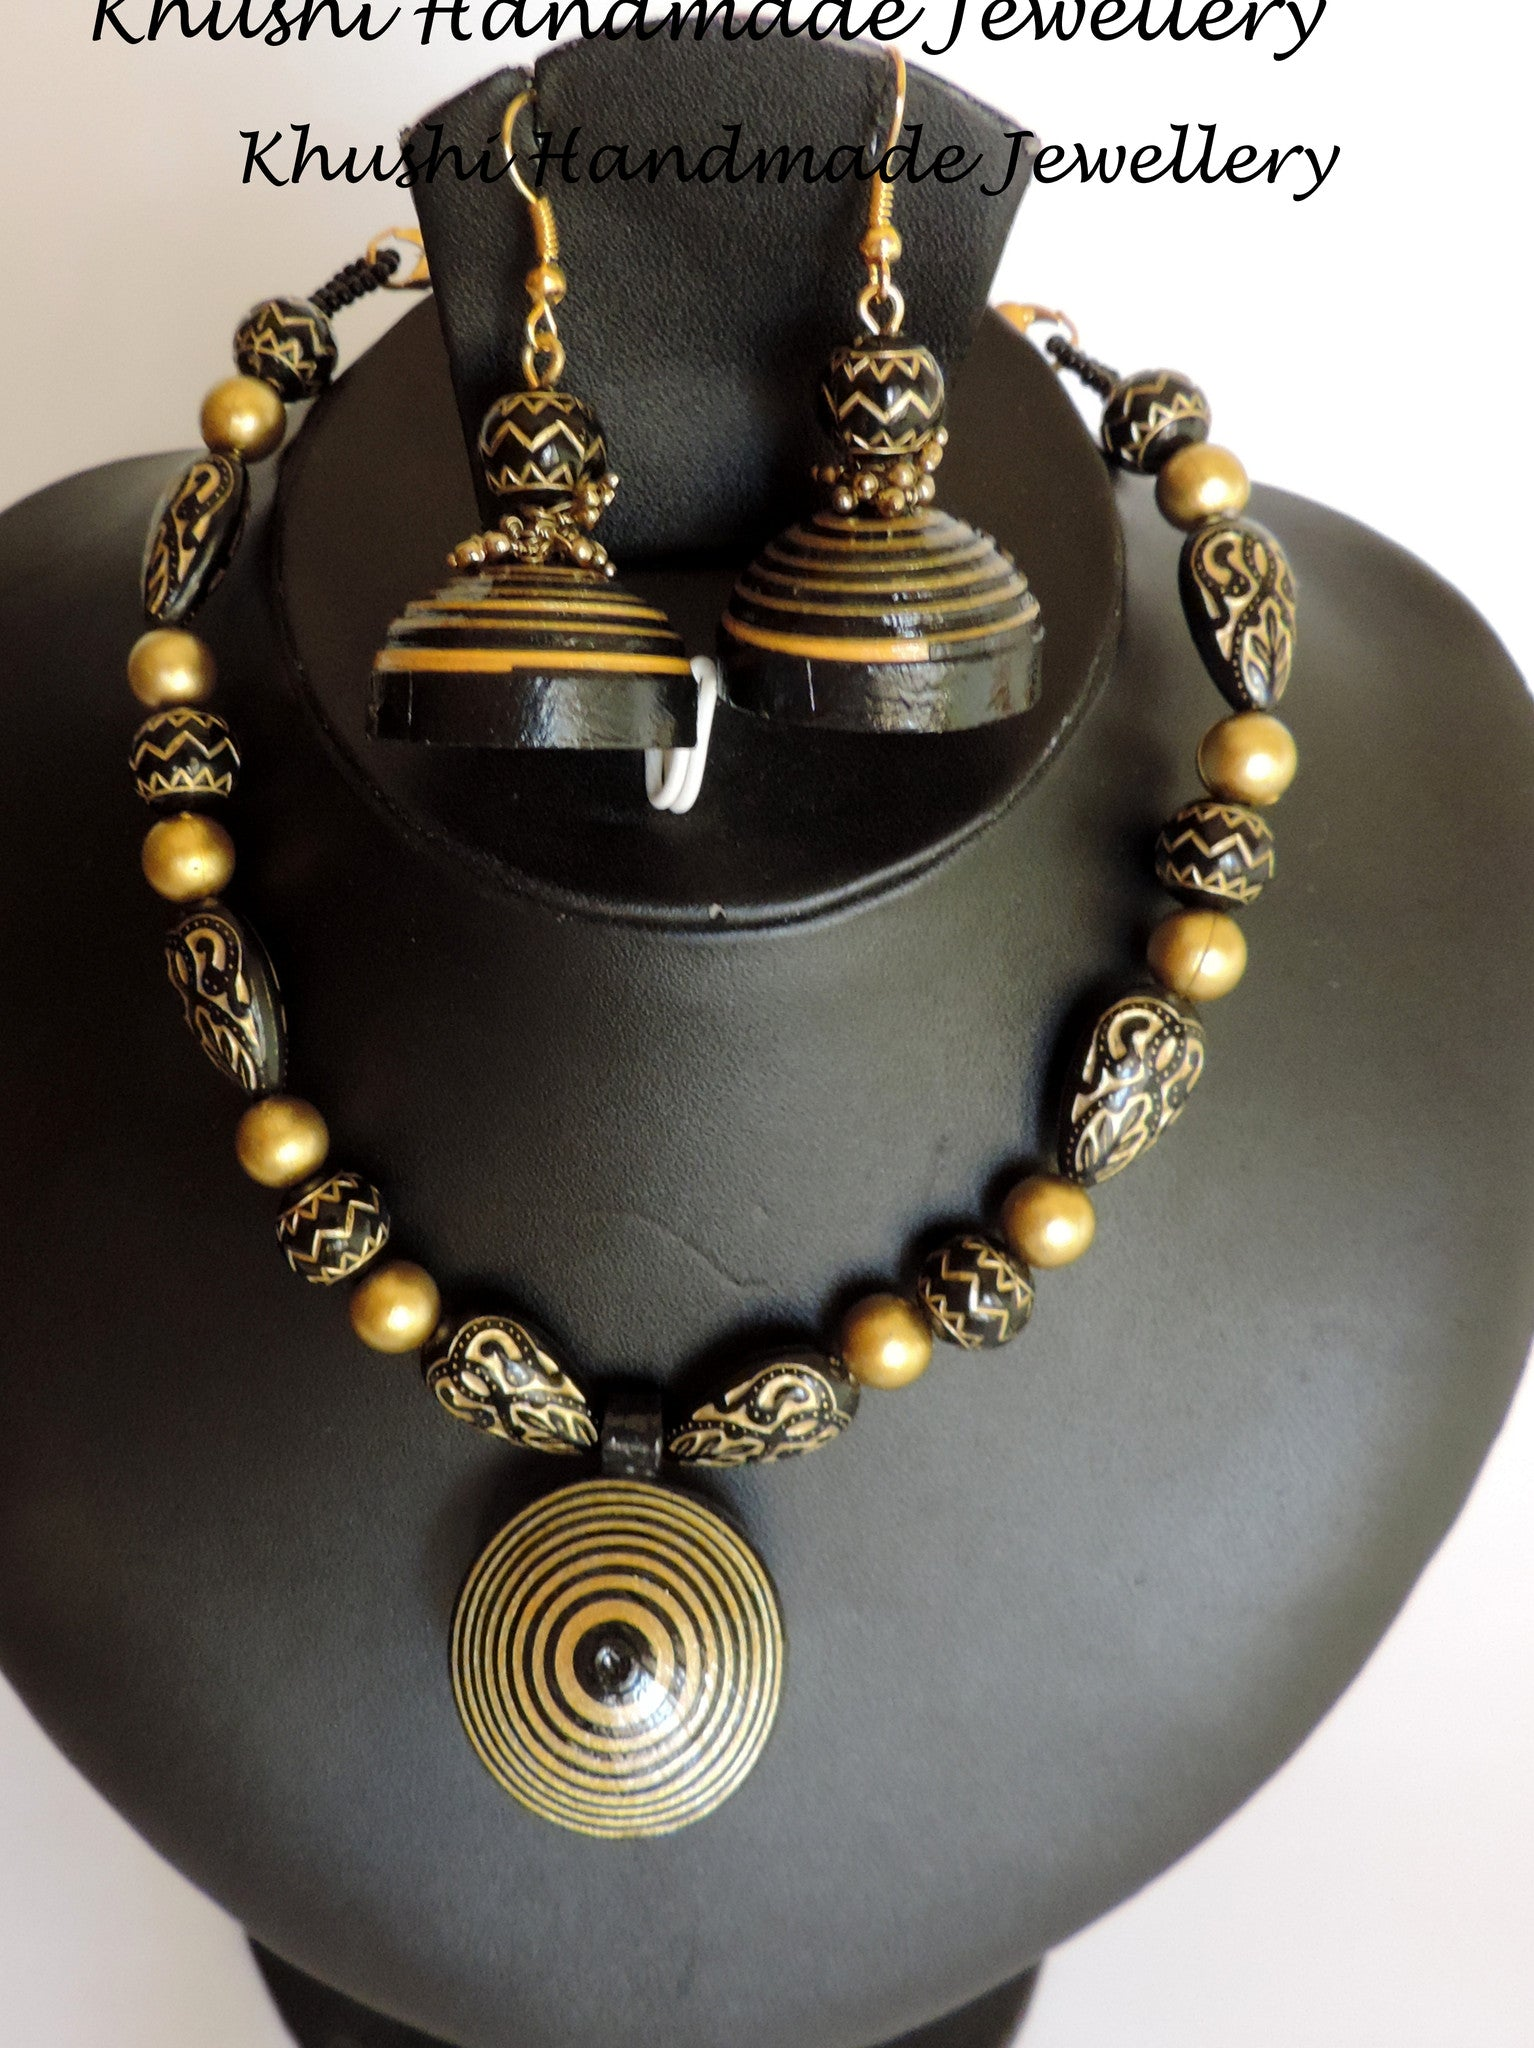 Classic Gold-black Necklace set - Khushi Handmade Jewellery